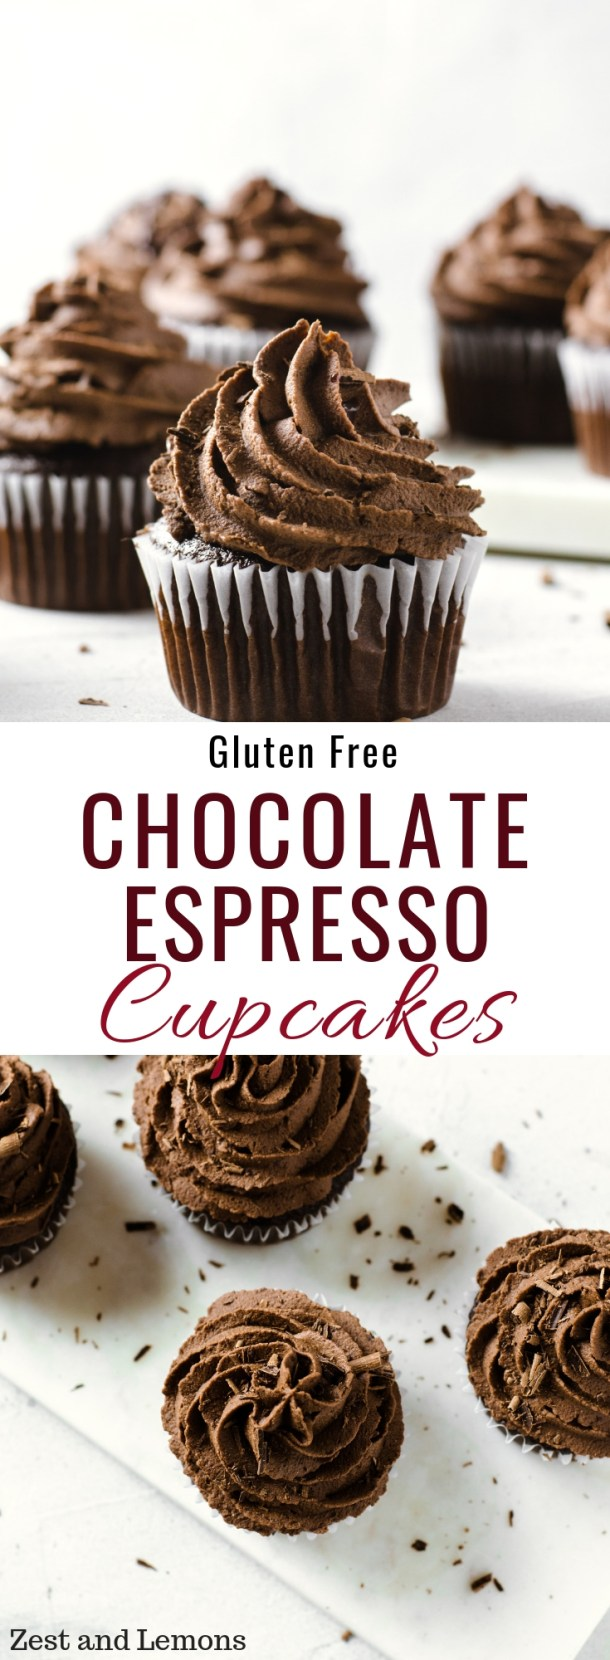 Gluten free chocolate cupcakes with espresso ganache - Zest and Lemons #glutenfreecupcakes #chocolatecupcakes #chocolateespresso